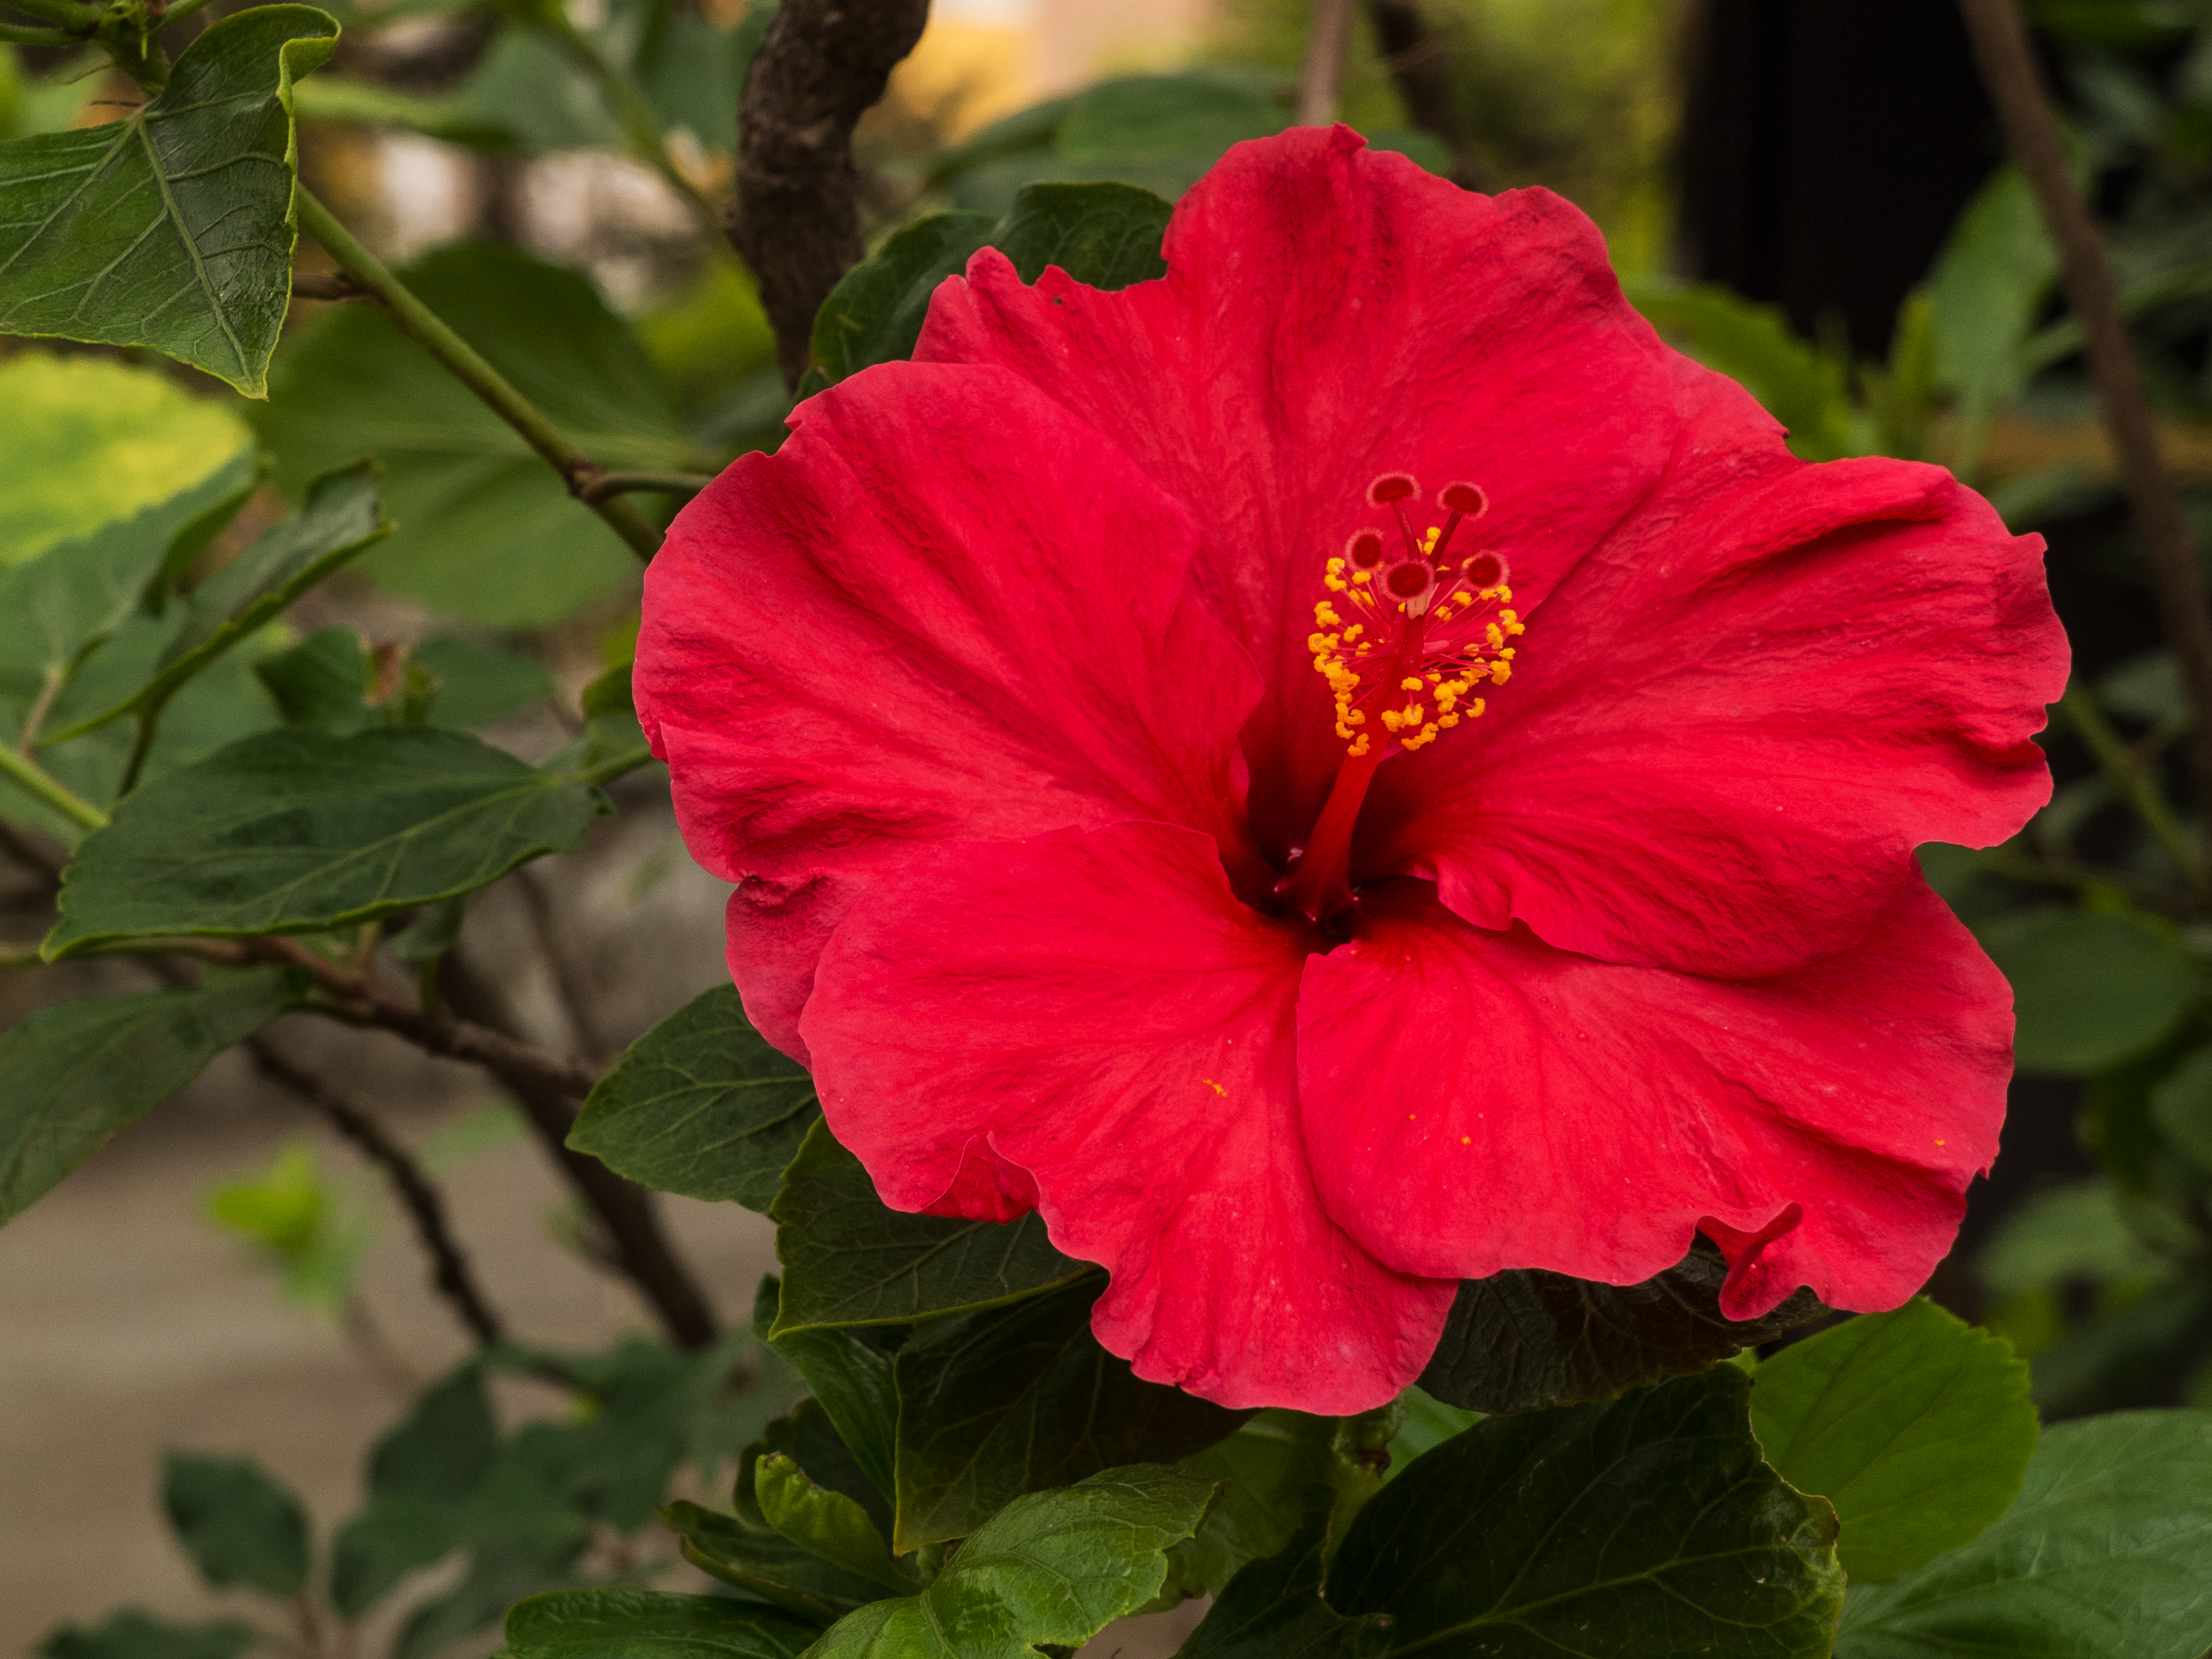 A close up of a pink Hibiscus flower in Gibraltar.